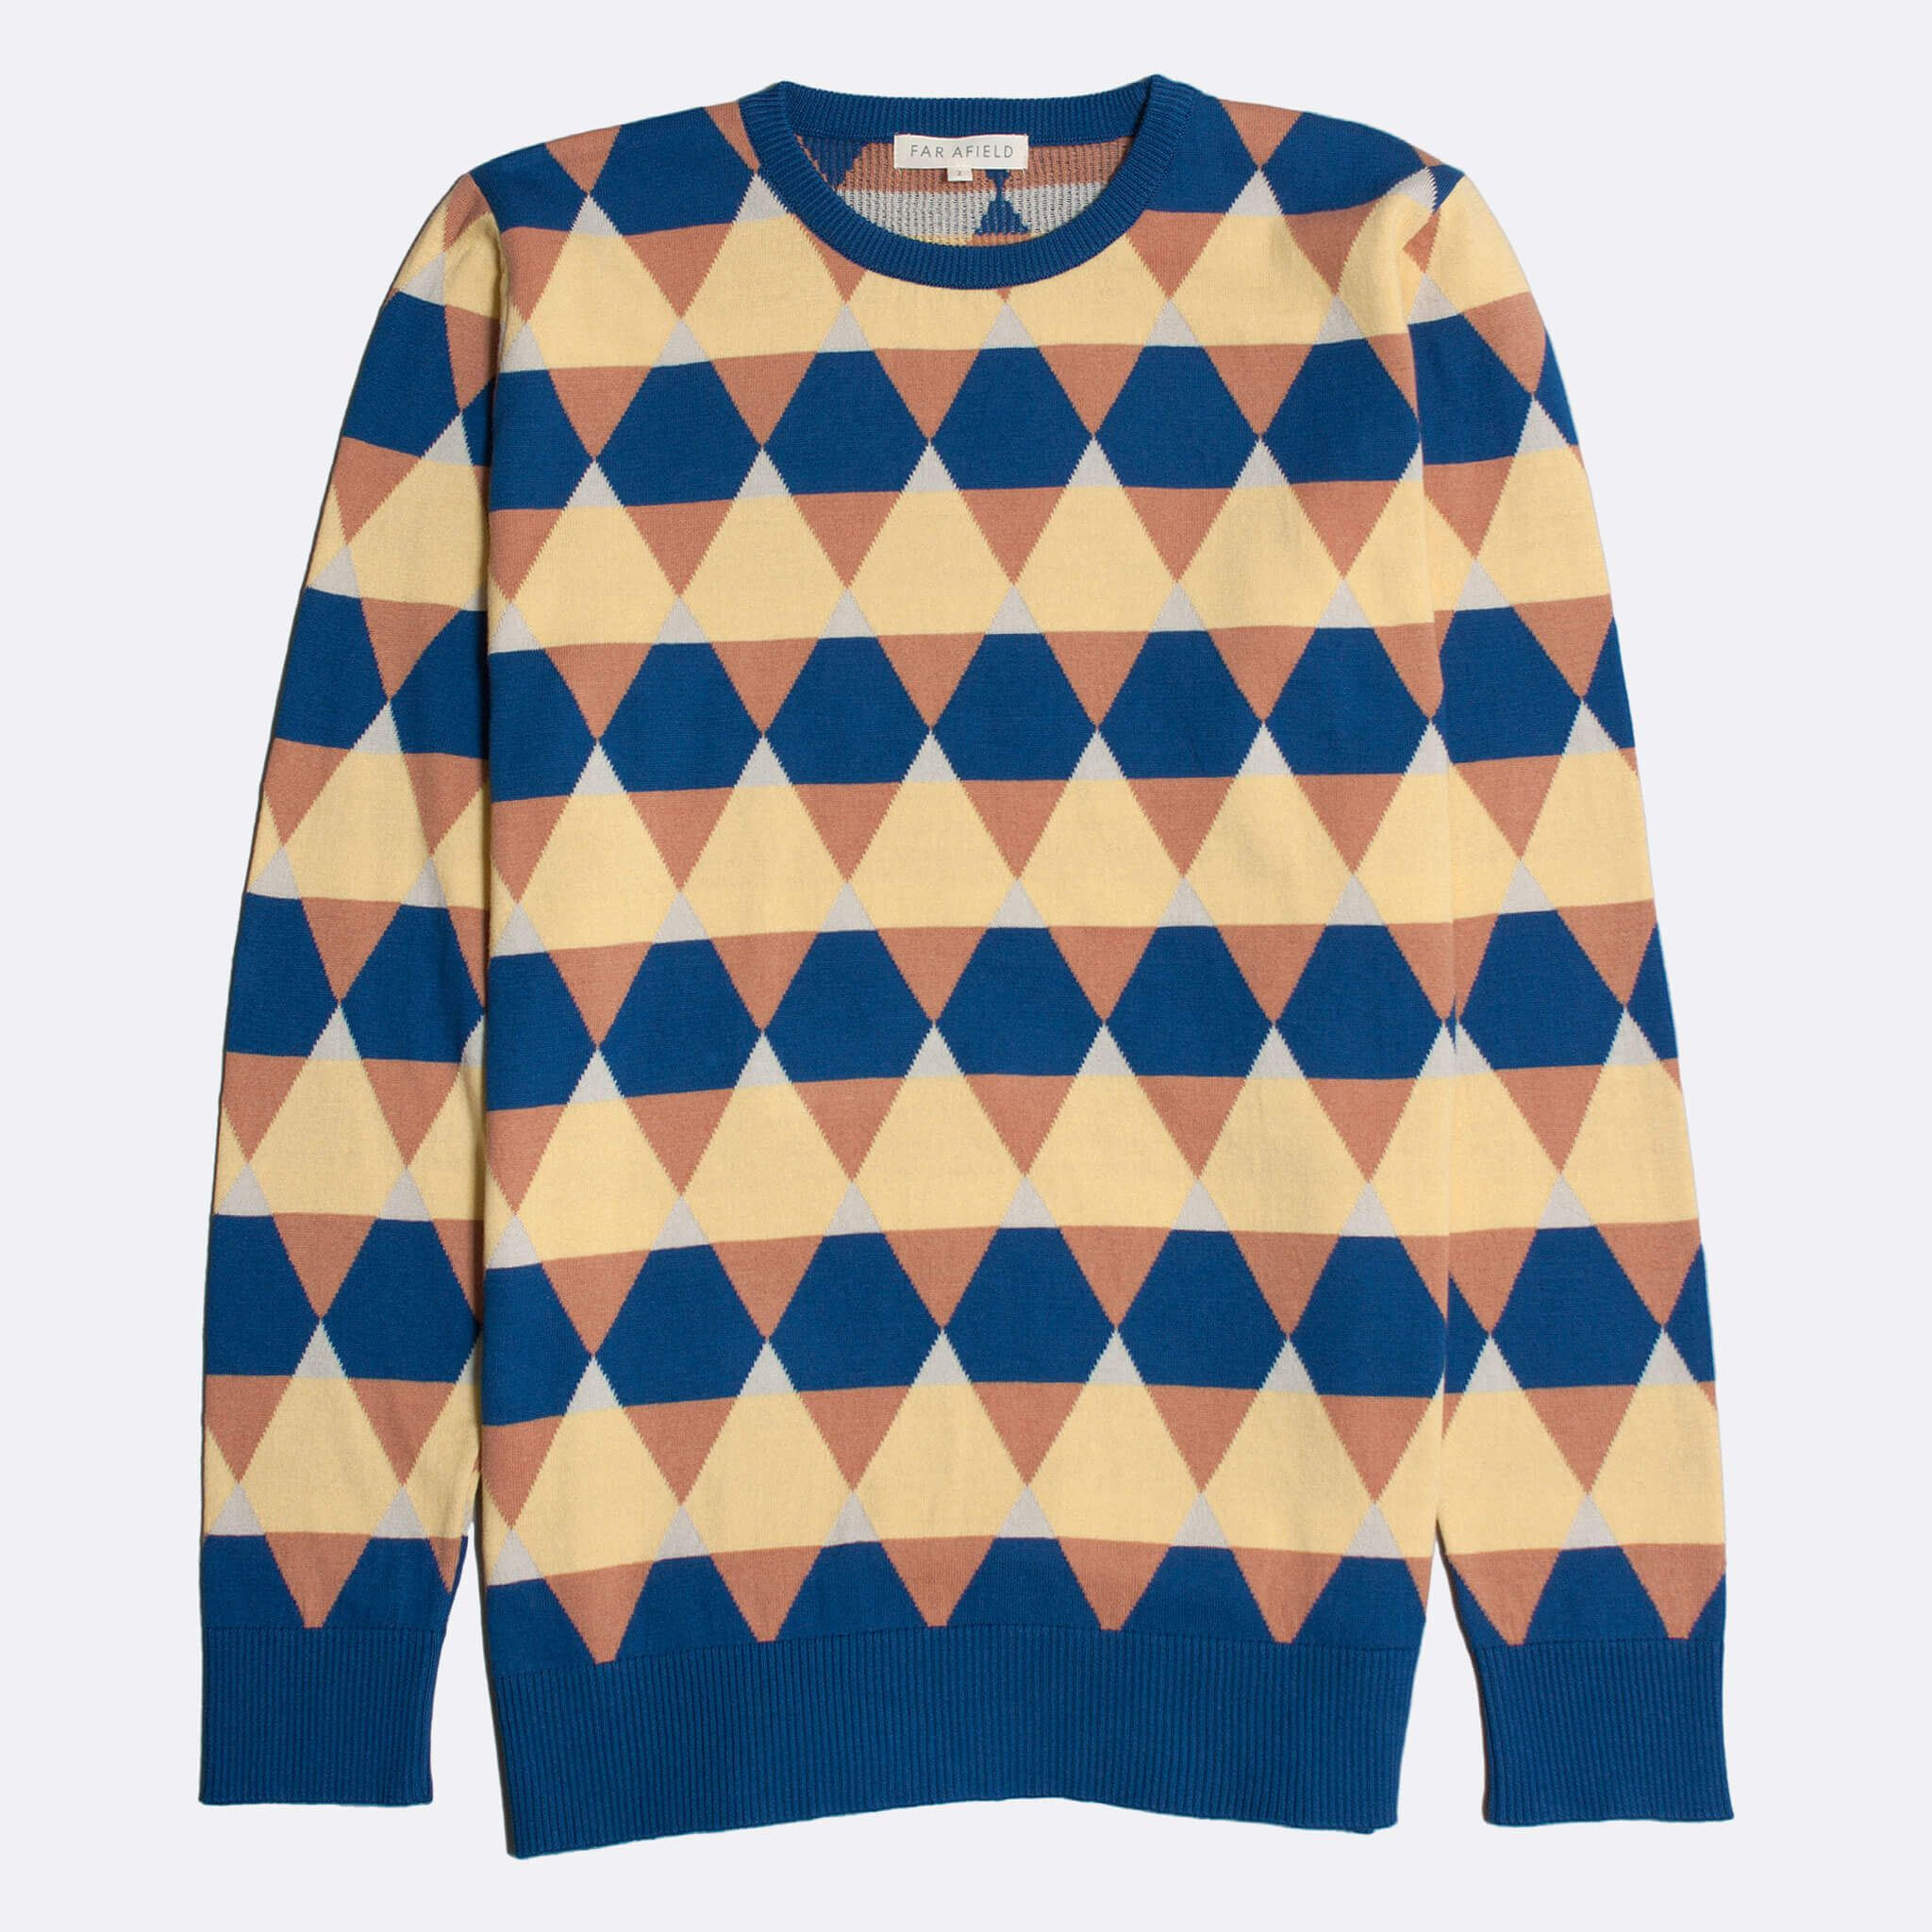 Far Afield Amnesia Long Sleeve Crew Neck a Blue / Orange / Yellow BCI Cotton Classic Fabric Knitted Jumper Casual